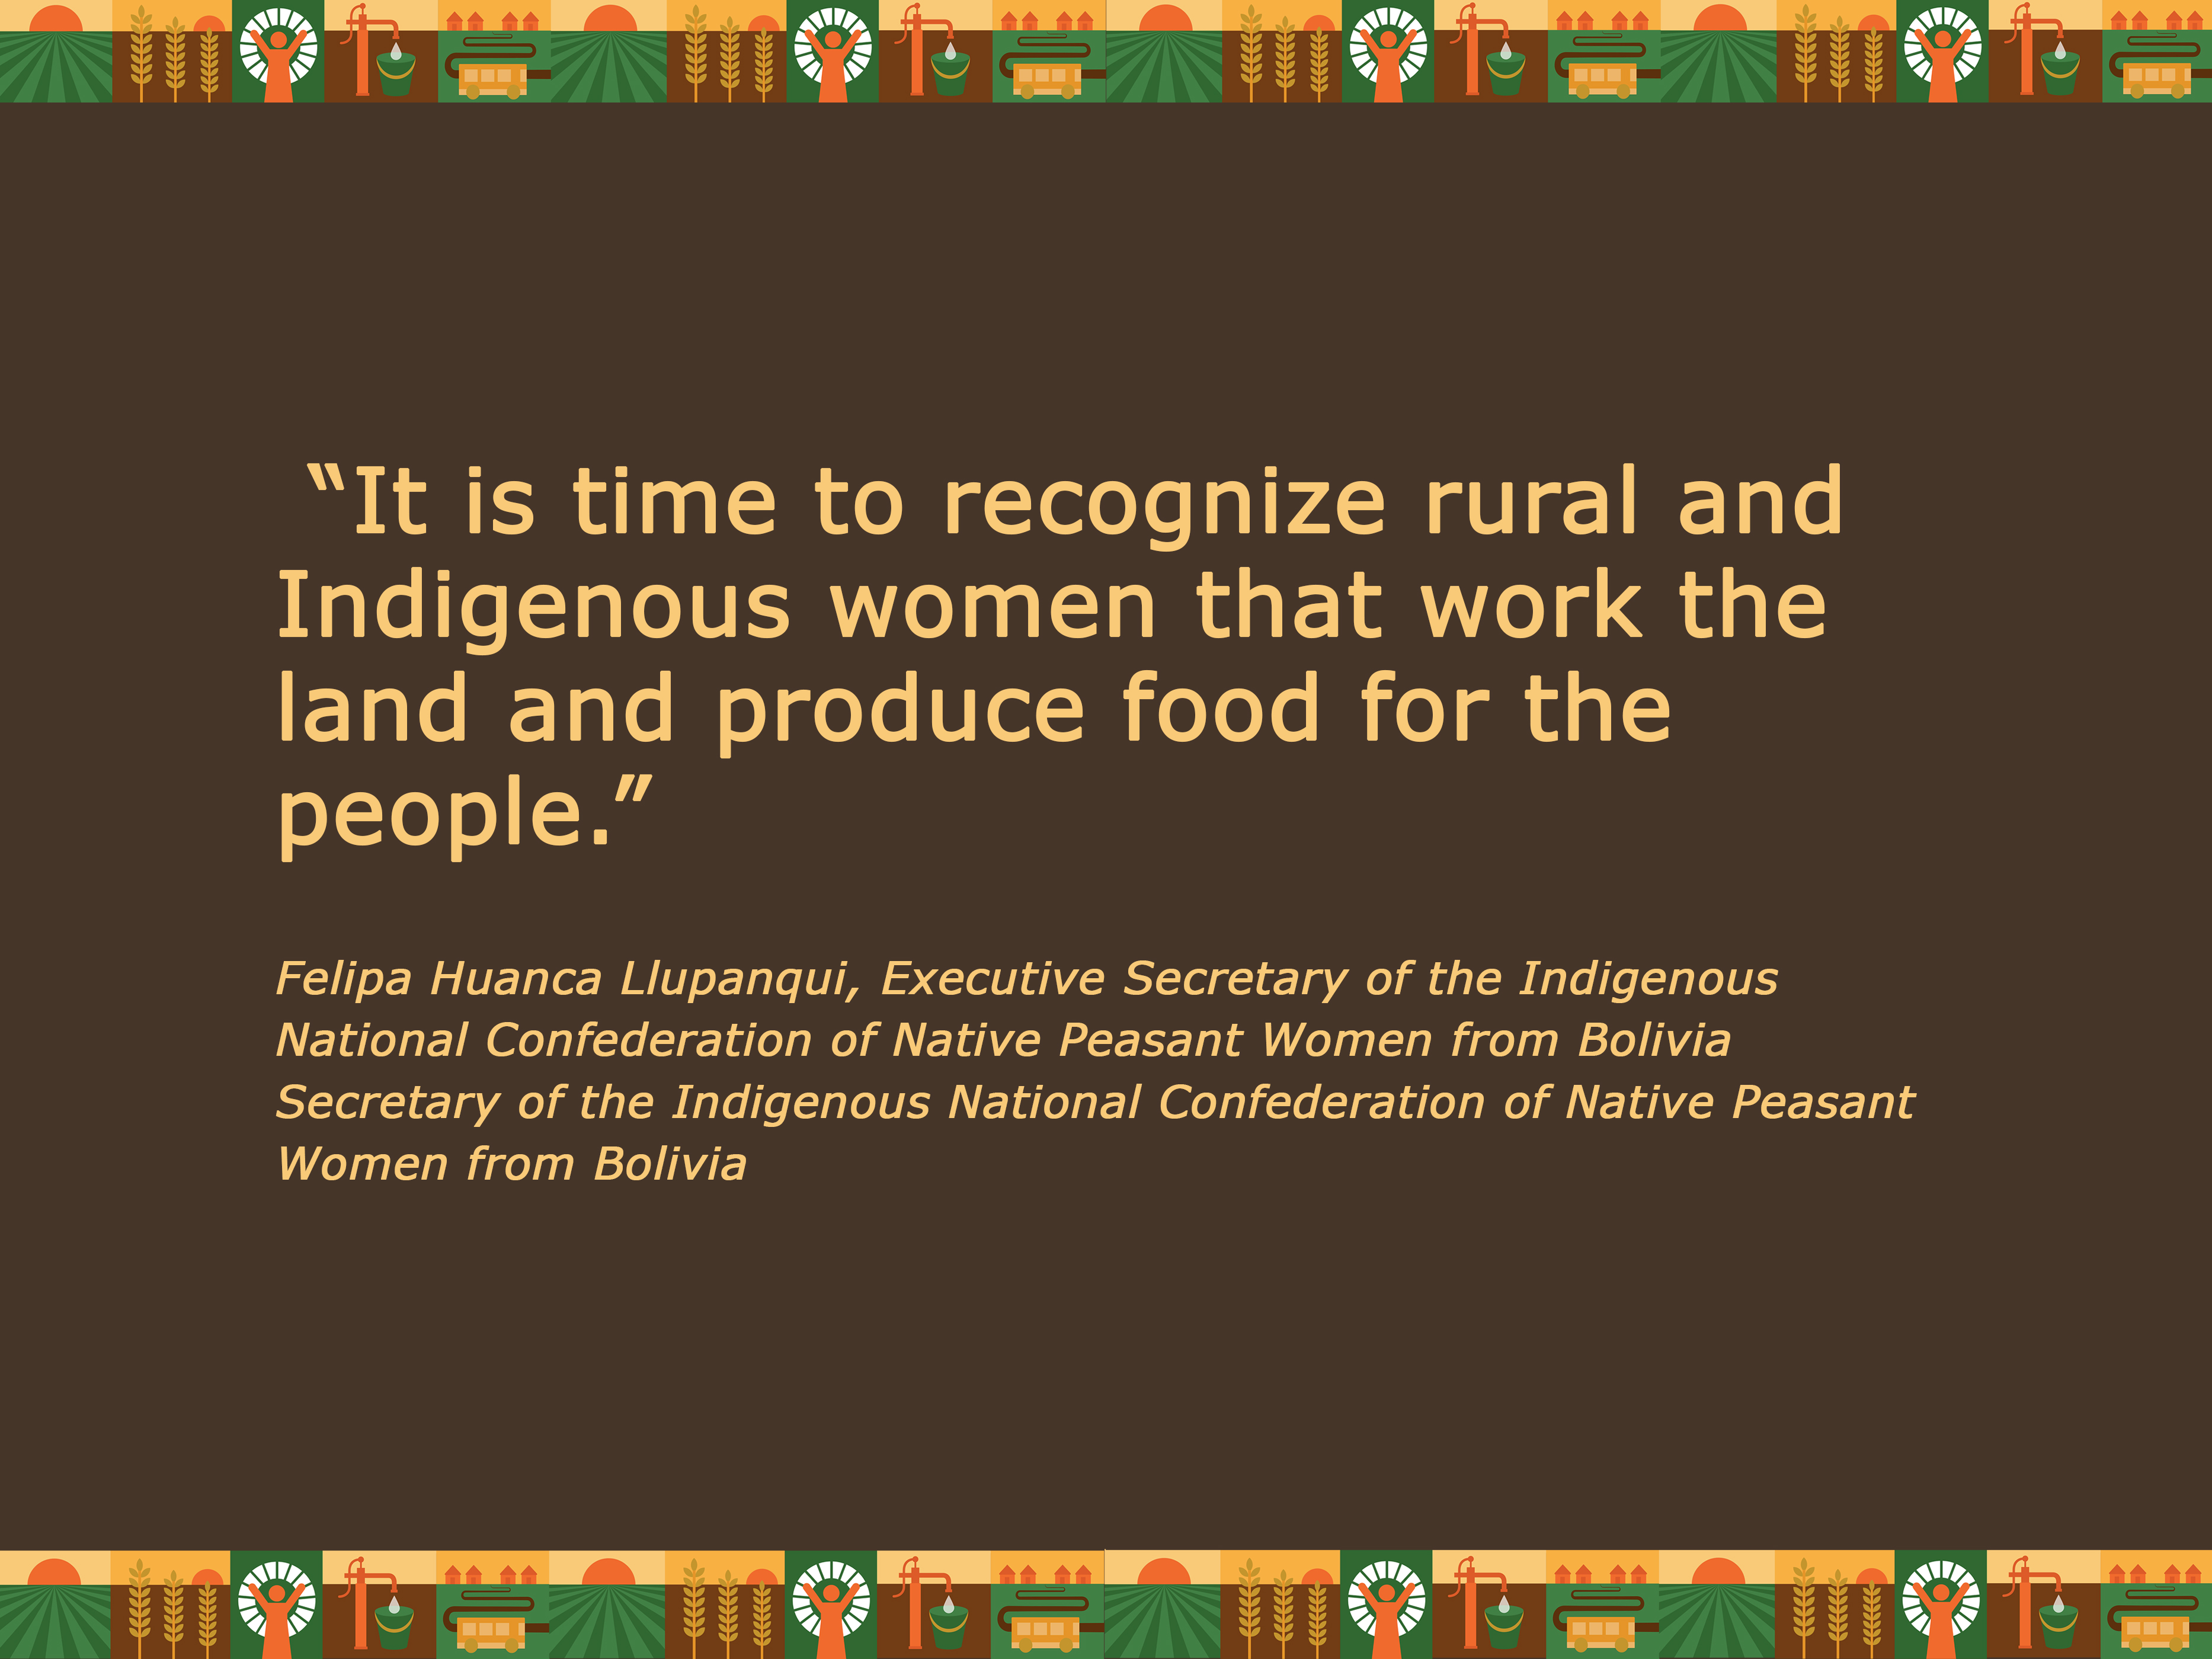 """Quote: """"It is time to recognize rural and Indigenous women that work the land and produce food for the people."""" Felipa Huanca Llupanqui"""